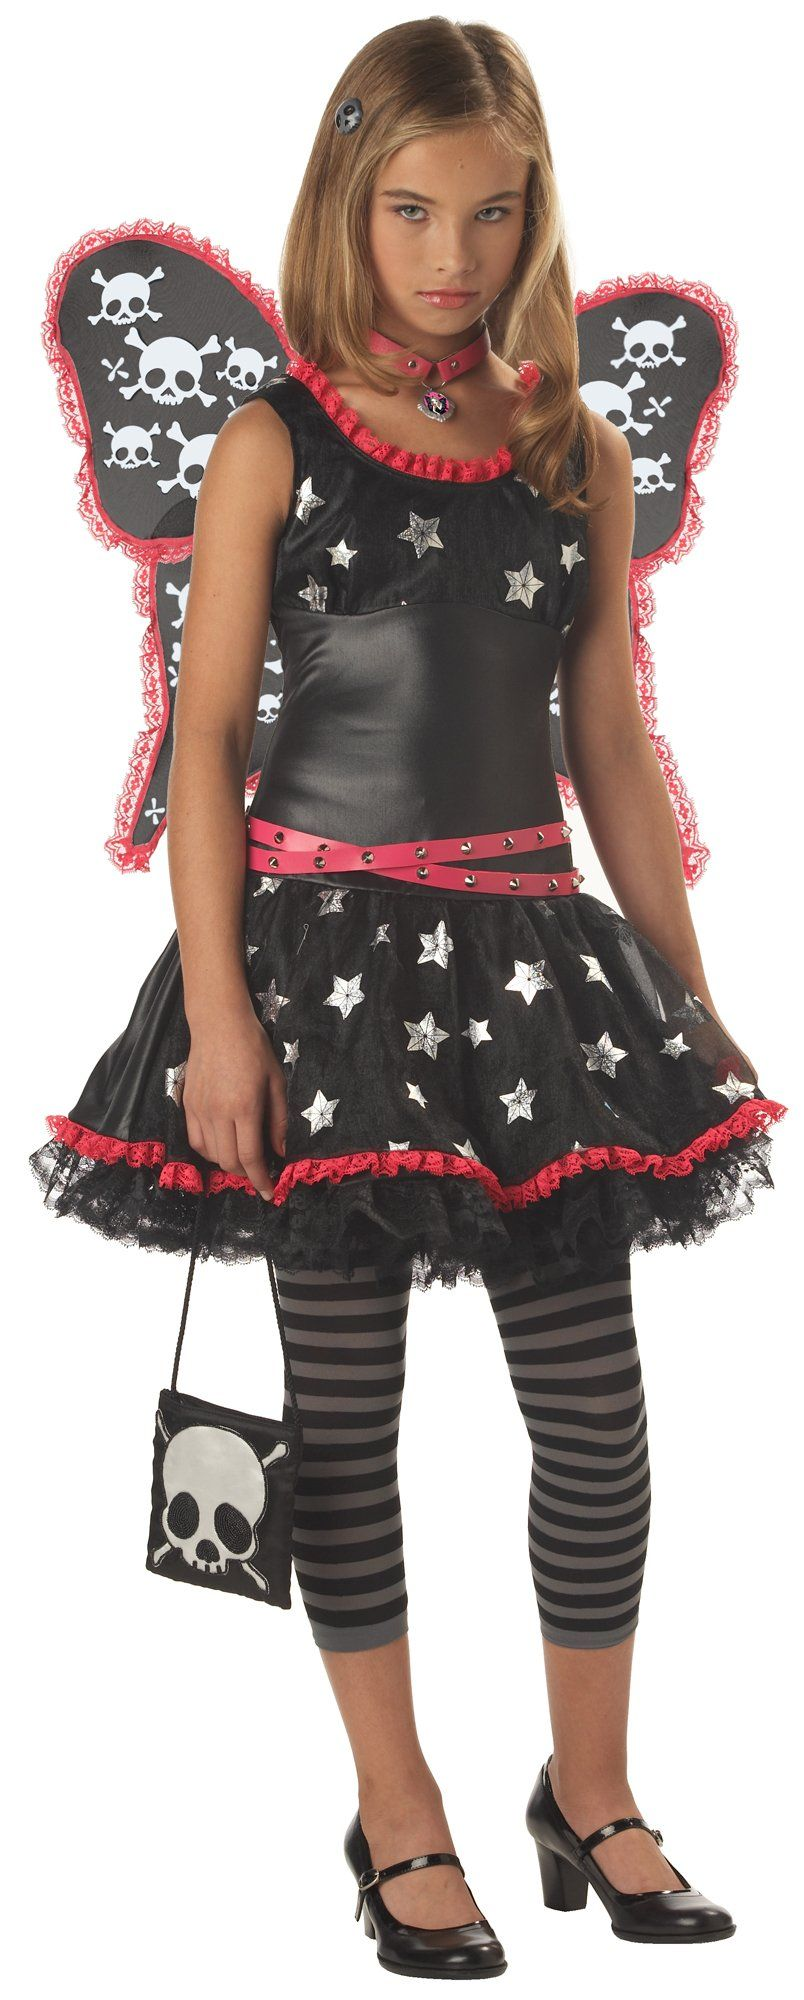 Tween Fairy Costume £29.75  Direct 2 U Fancy Dress Superstore. Fancy Dress Party Themes Accessories For The Whole Family. ...  sc 1 st  Pinterest & Tween Fairy Costume £29.75 : Direct 2 U Fancy Dress Superstore ...